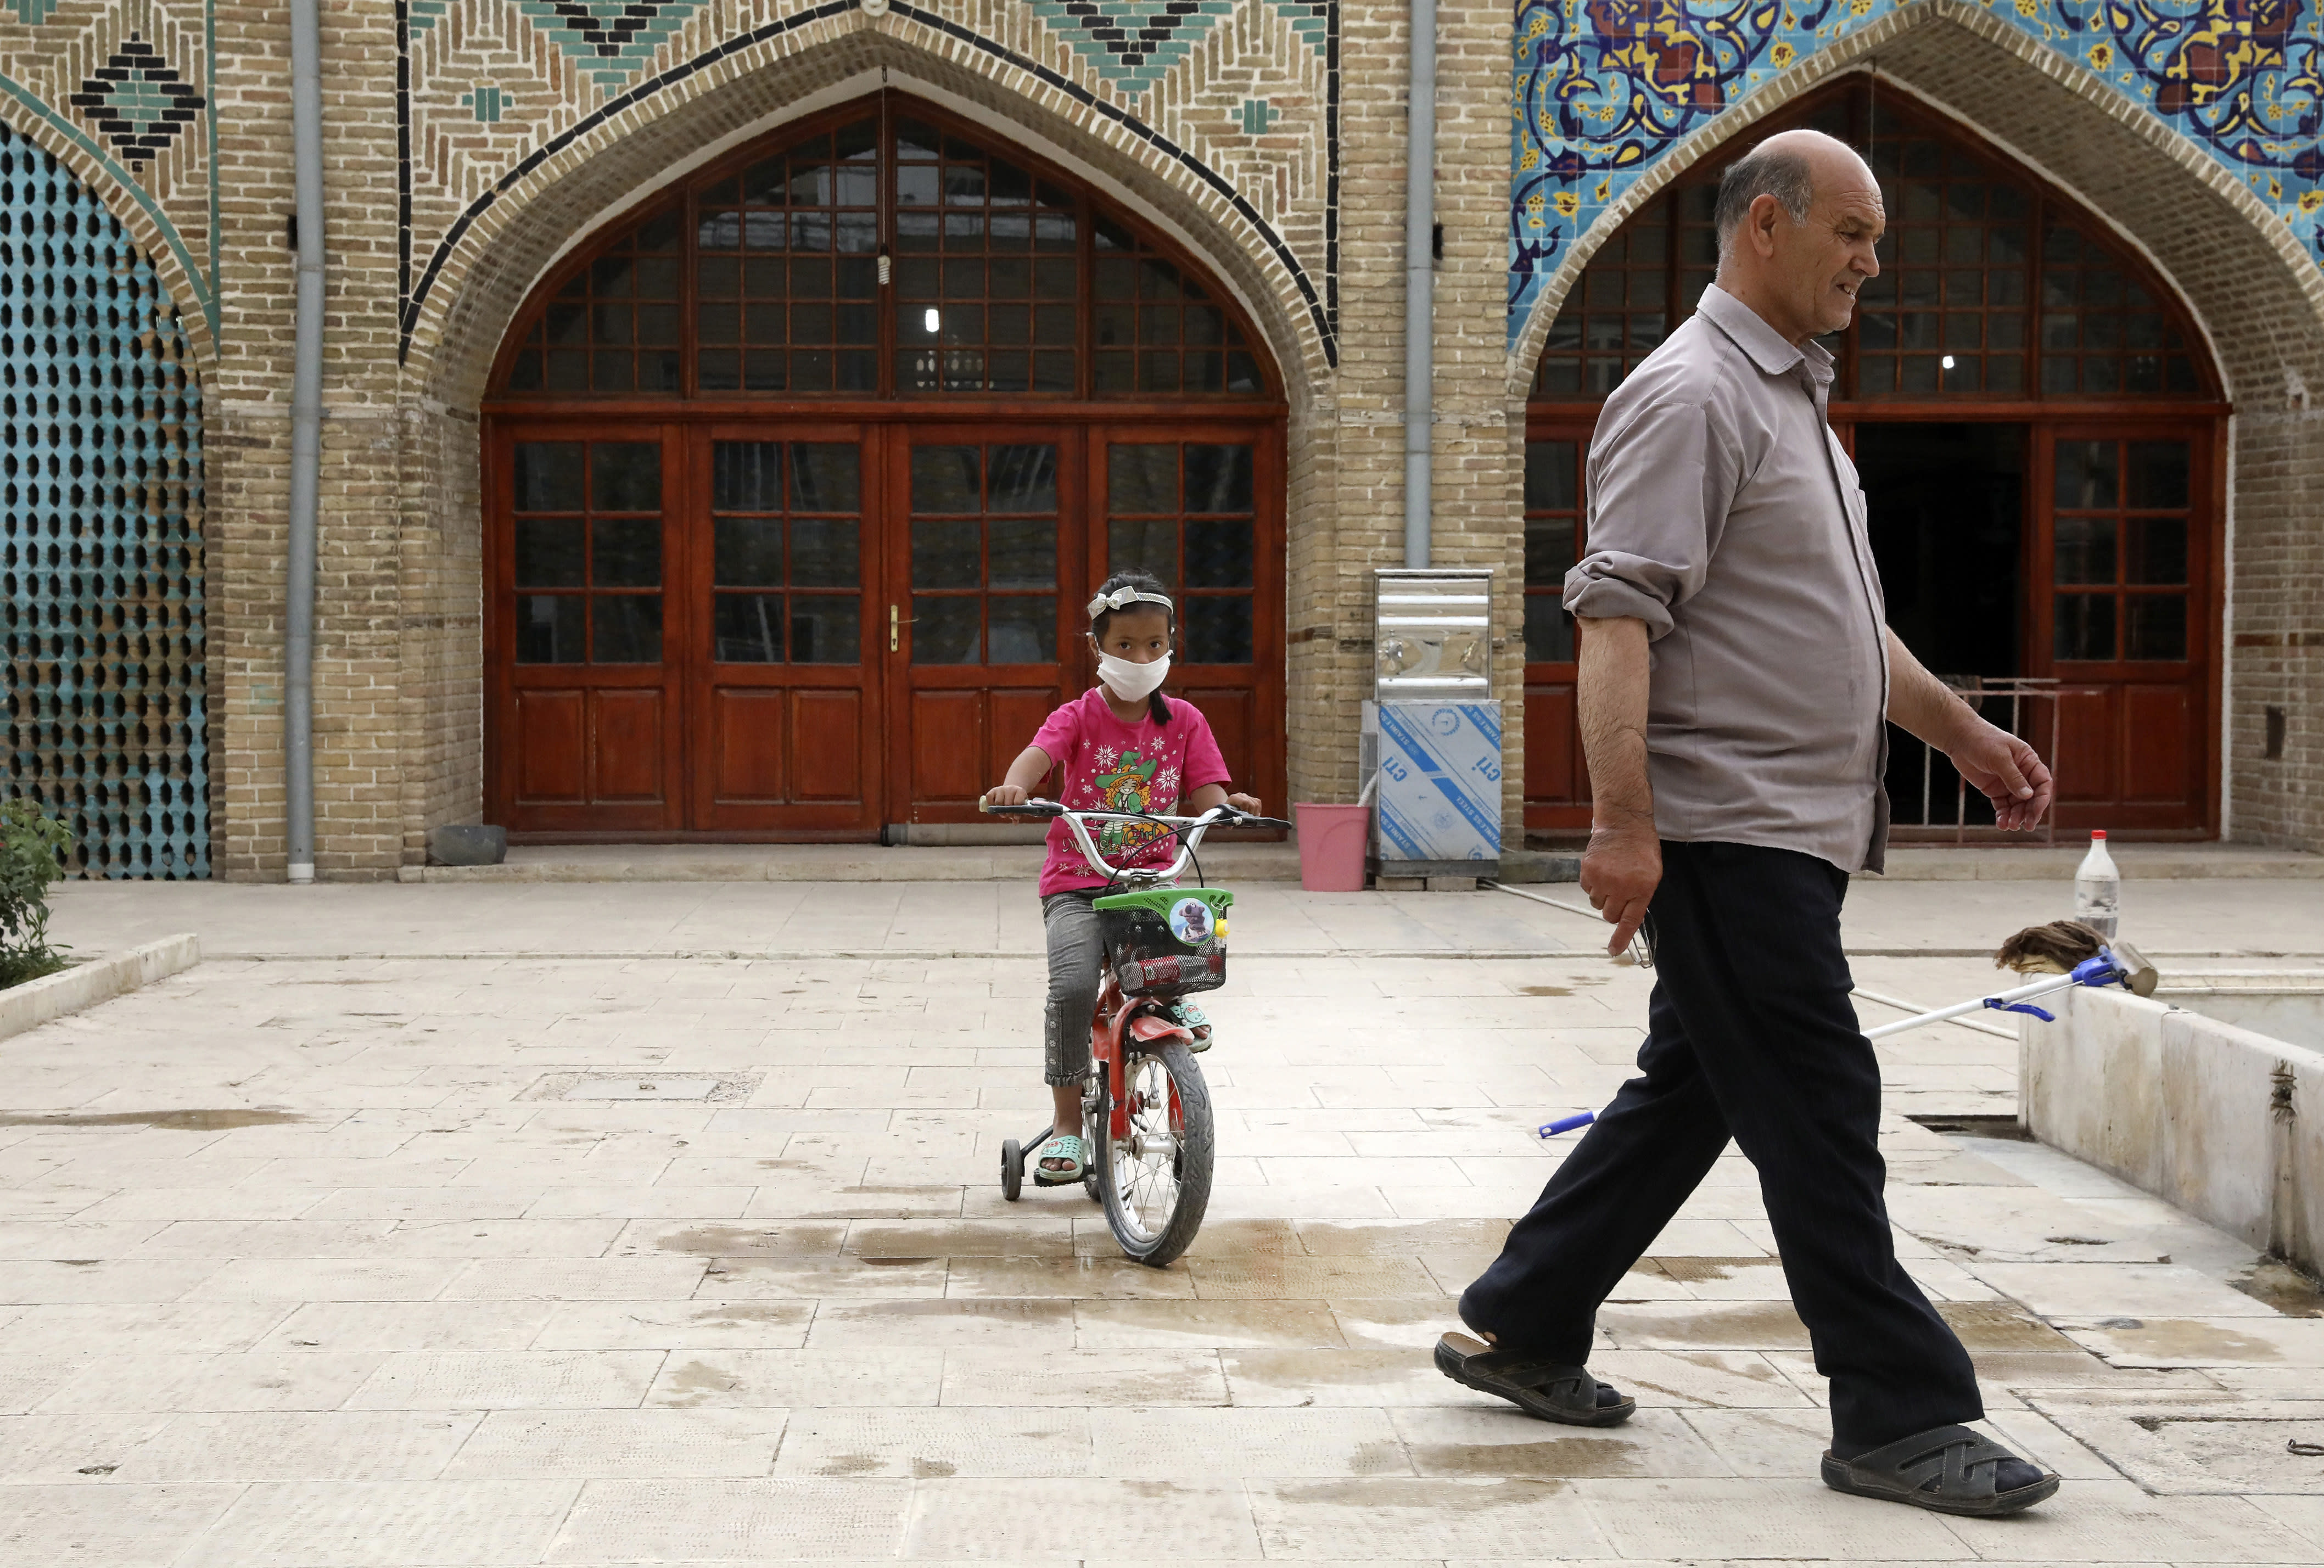 A girl wearing a protective face mask to help prevent the spread of the coronavirus rides her bicycle in the courtyard of a mosque, in the city of Zanjan, some 330 kilometers (205 miles) west of the capital Tehran, Iran, Sunday, July 5, 2020. Iran on Sunday instituted mandatory mask-wearing as fears mount over newly spiking reported deaths from the coronavirus, even as its public increasingly shrugs off the danger of the COVID-19 illness it causes. (AP Photo Vahid Salemi)